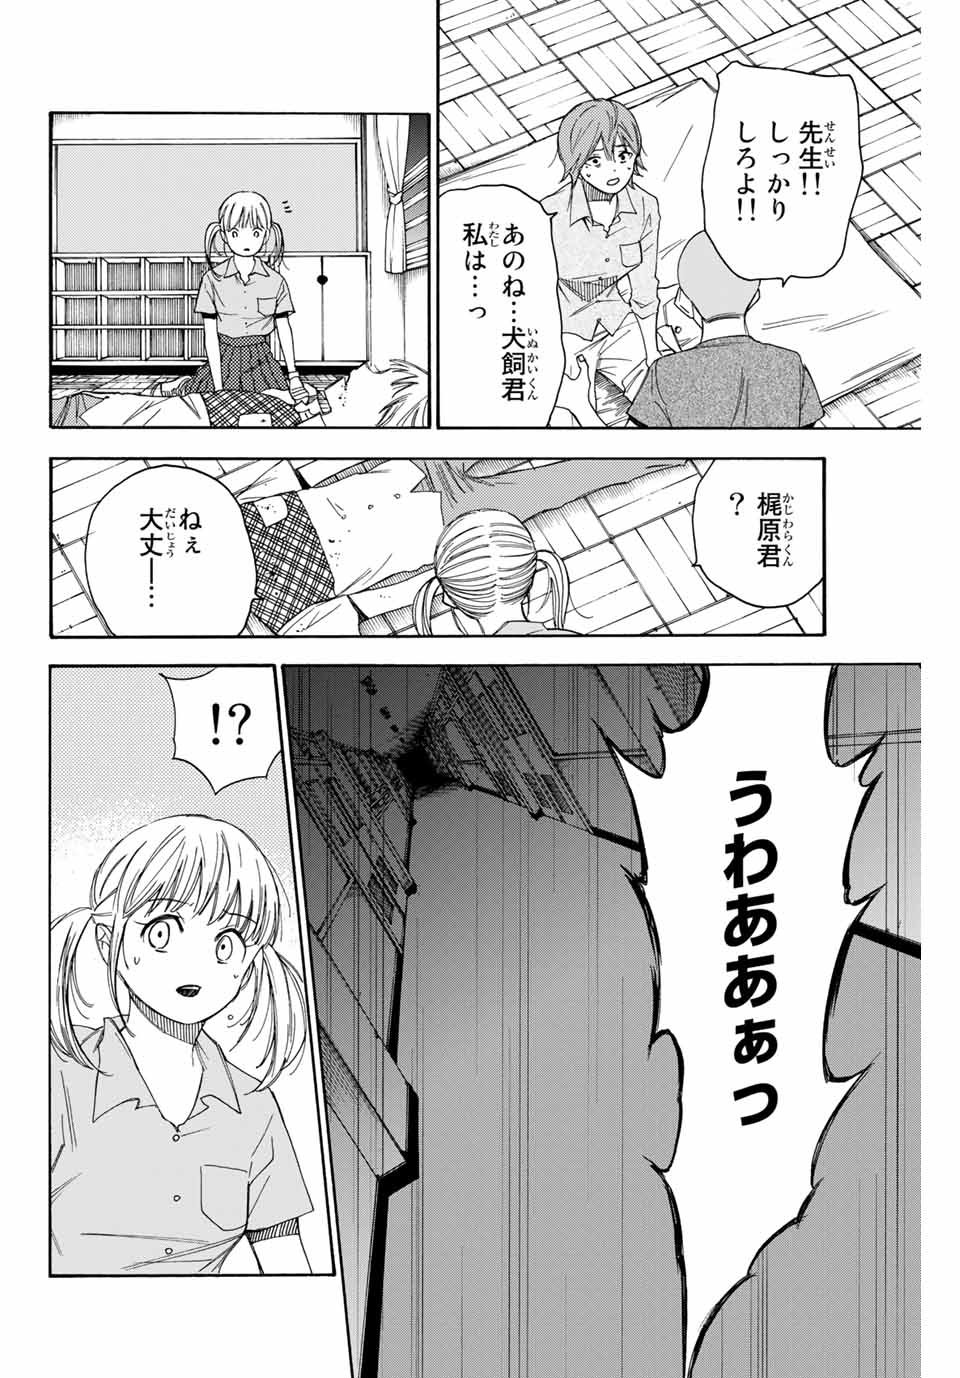 Manga Raw Nare no hate no Bokura Chapter 41